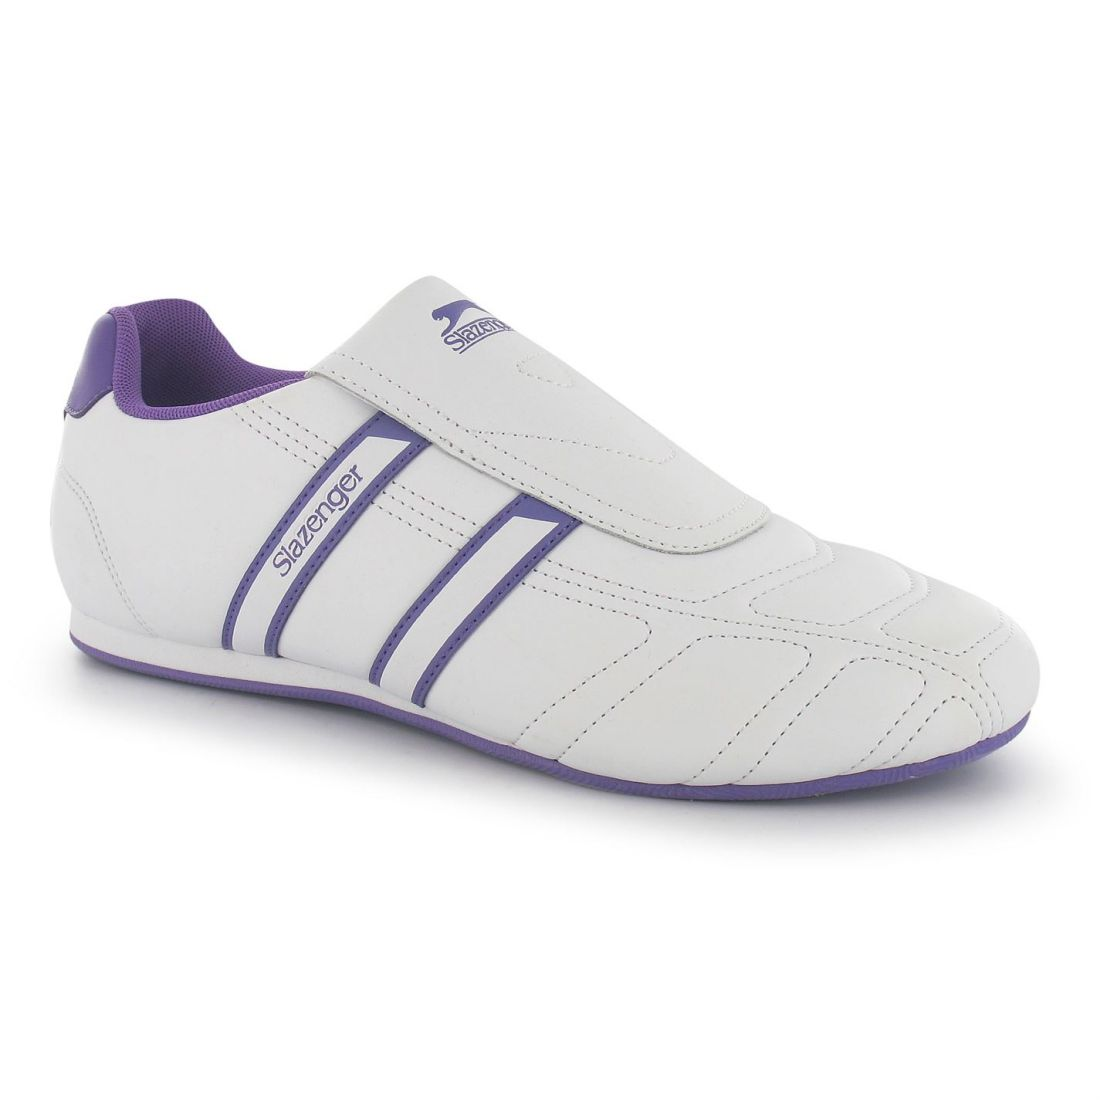 Slazenger Femme Guerrier Baskets Baskets Slip On Chaussures